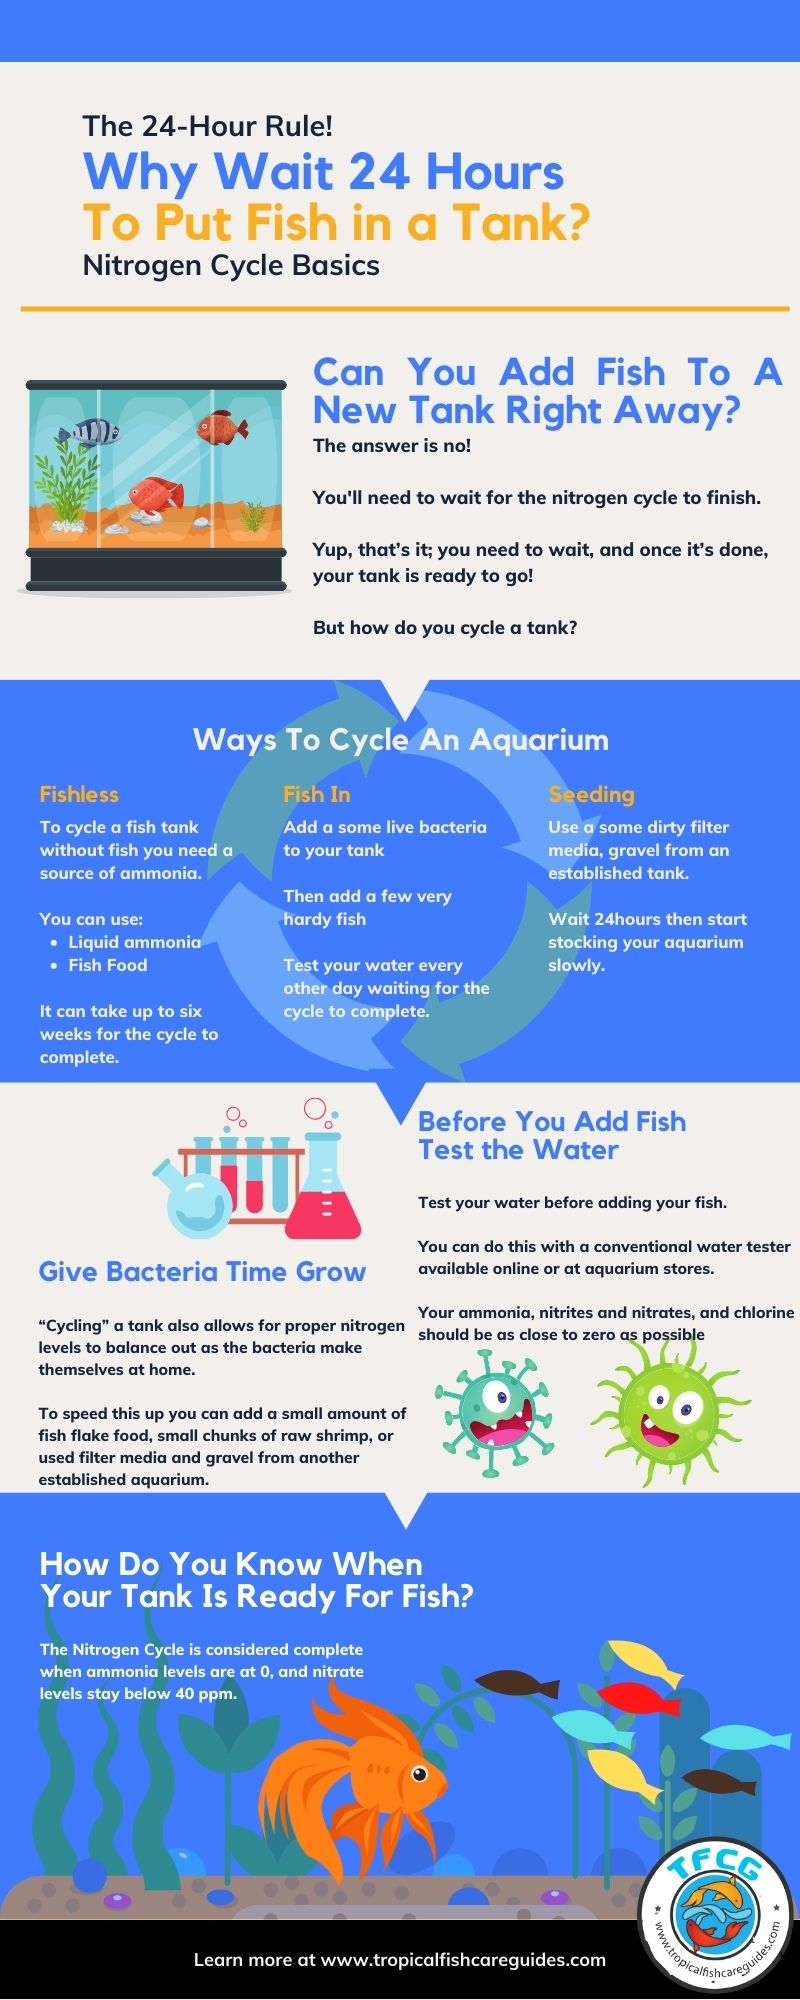 Infographic - How long to wait before putting fish in new tank.